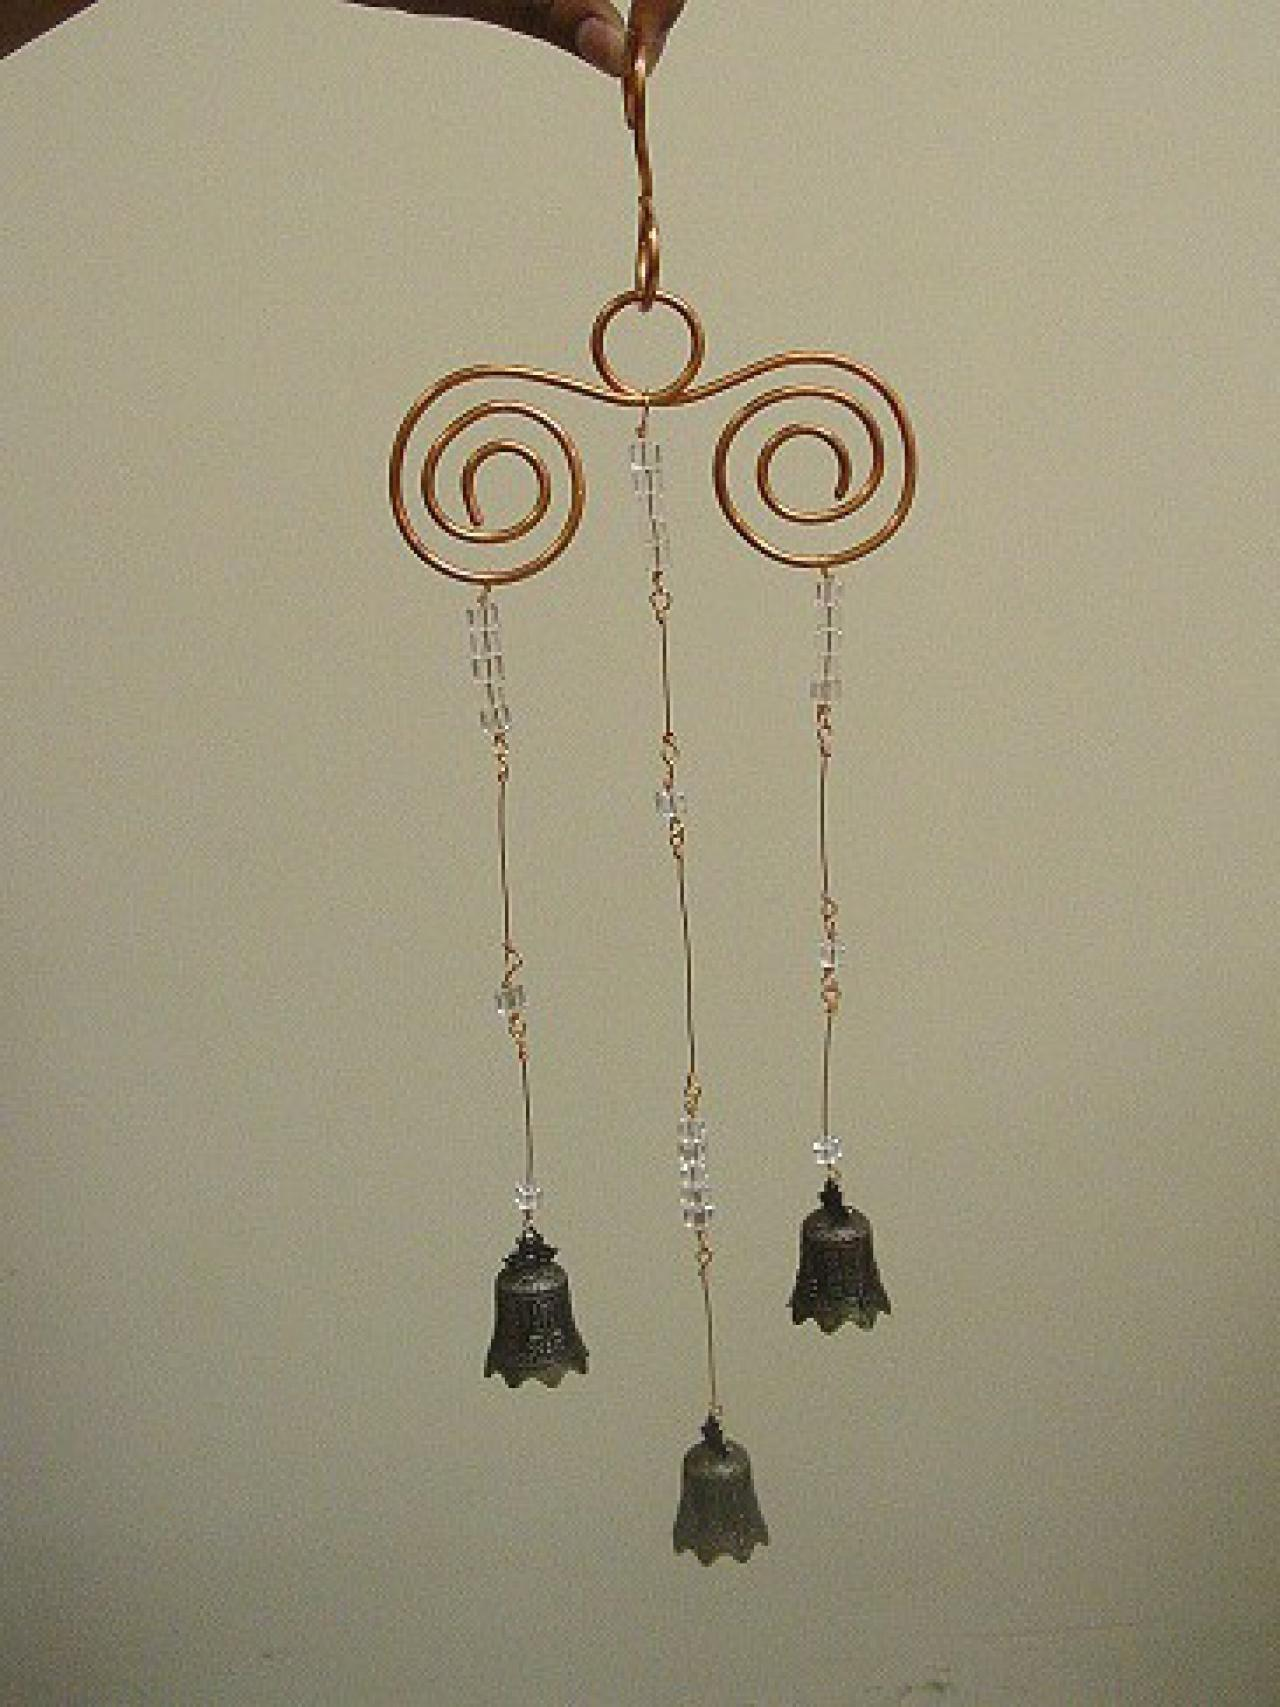 Homemade Wind Chime Ideas Projects